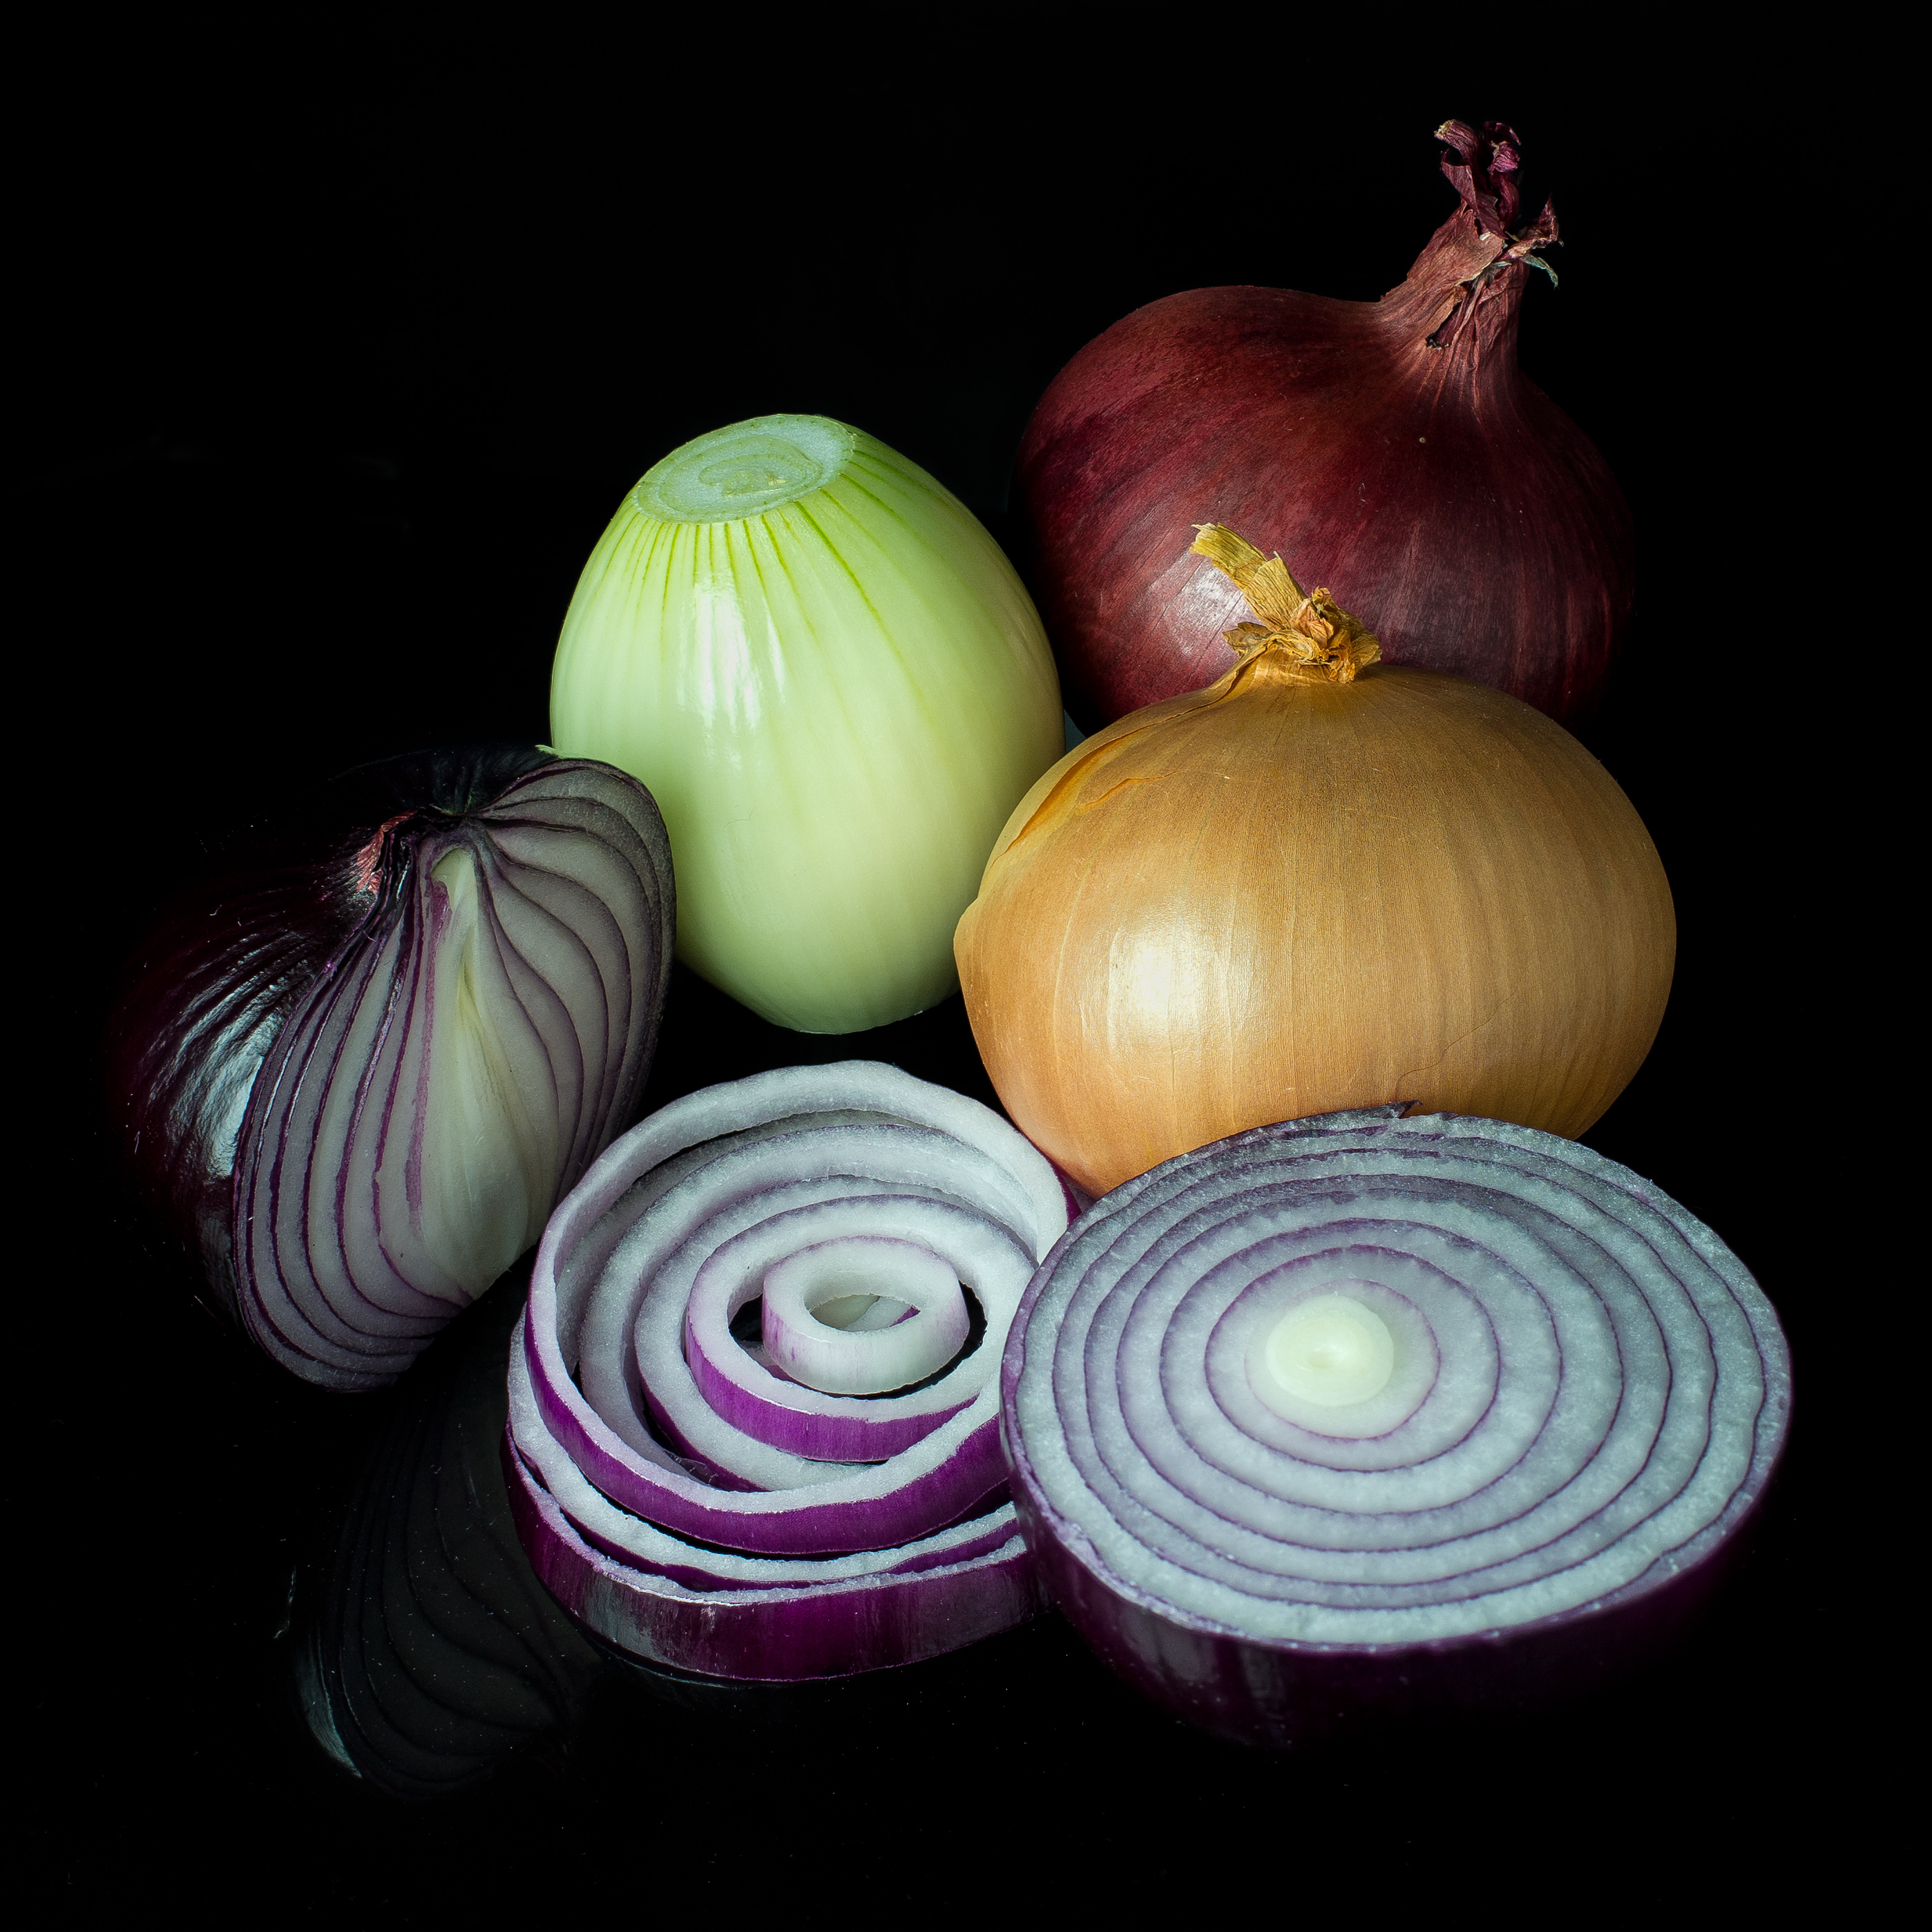 Onions Have Brown Rings